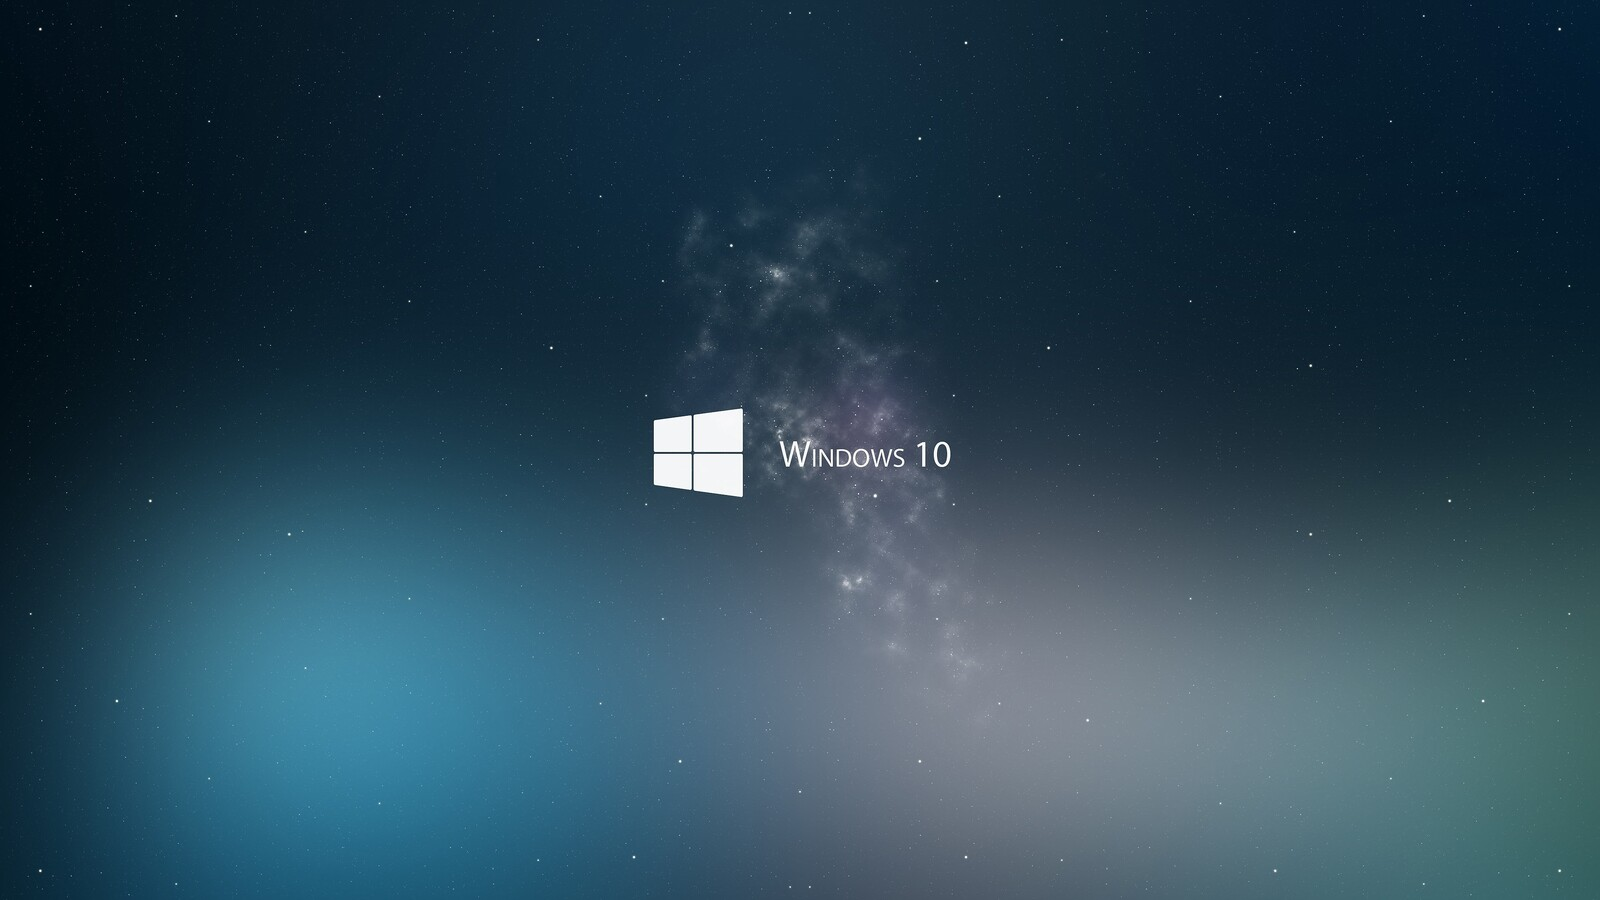 1600x900 windows 10 graphic design 1600x900 resolution hd 4k